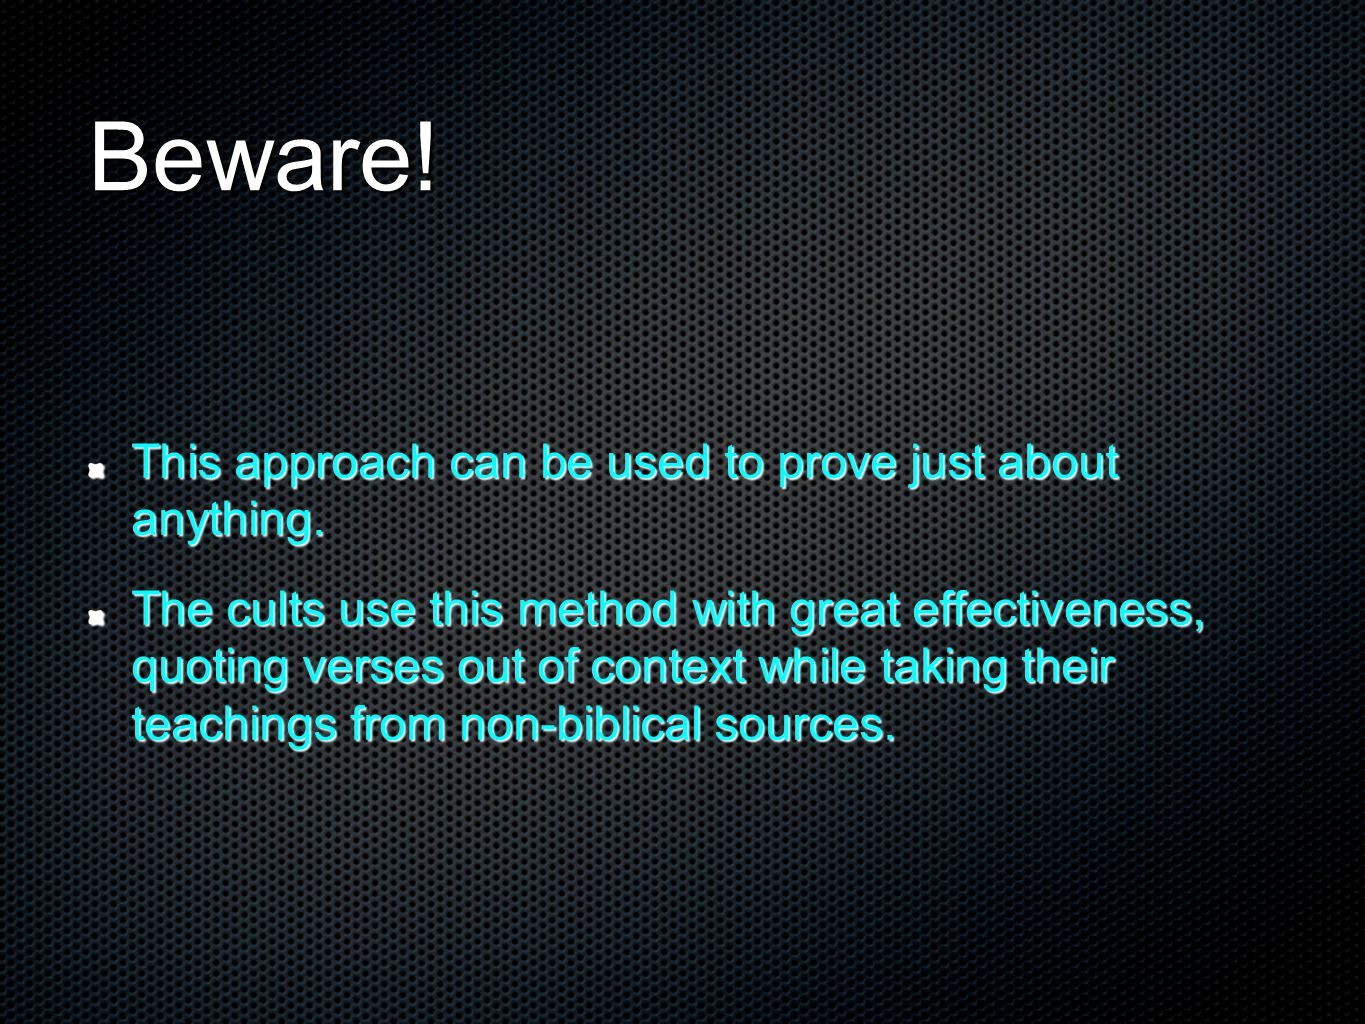 Beware.This approach can be used to prove just about anything.